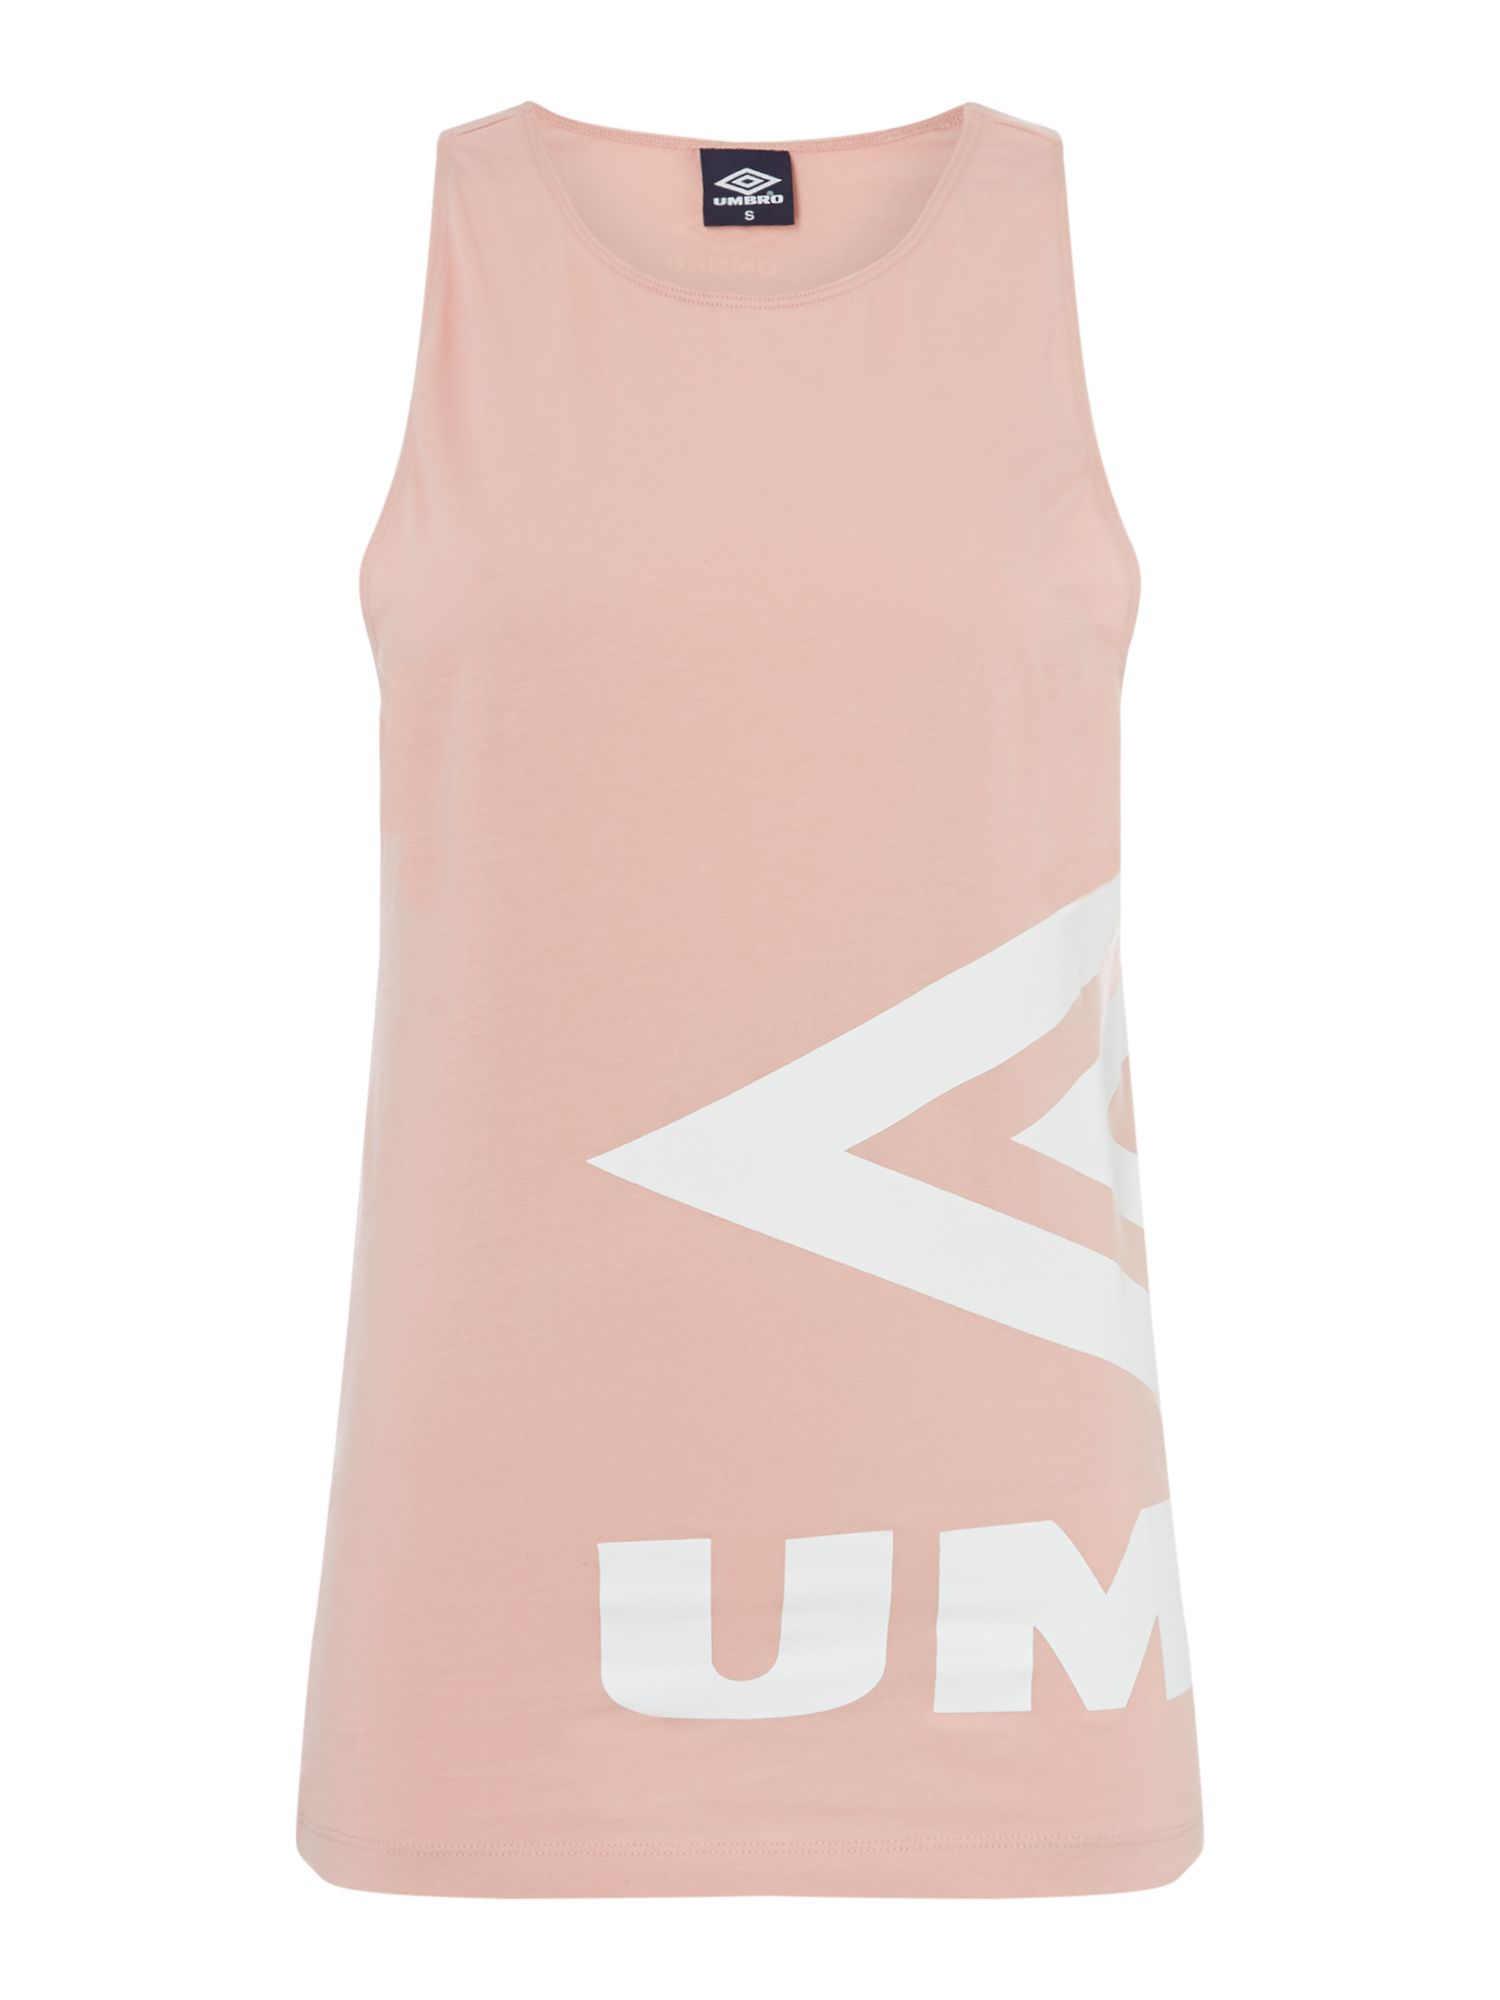 Umbro Side logo vest, Pink